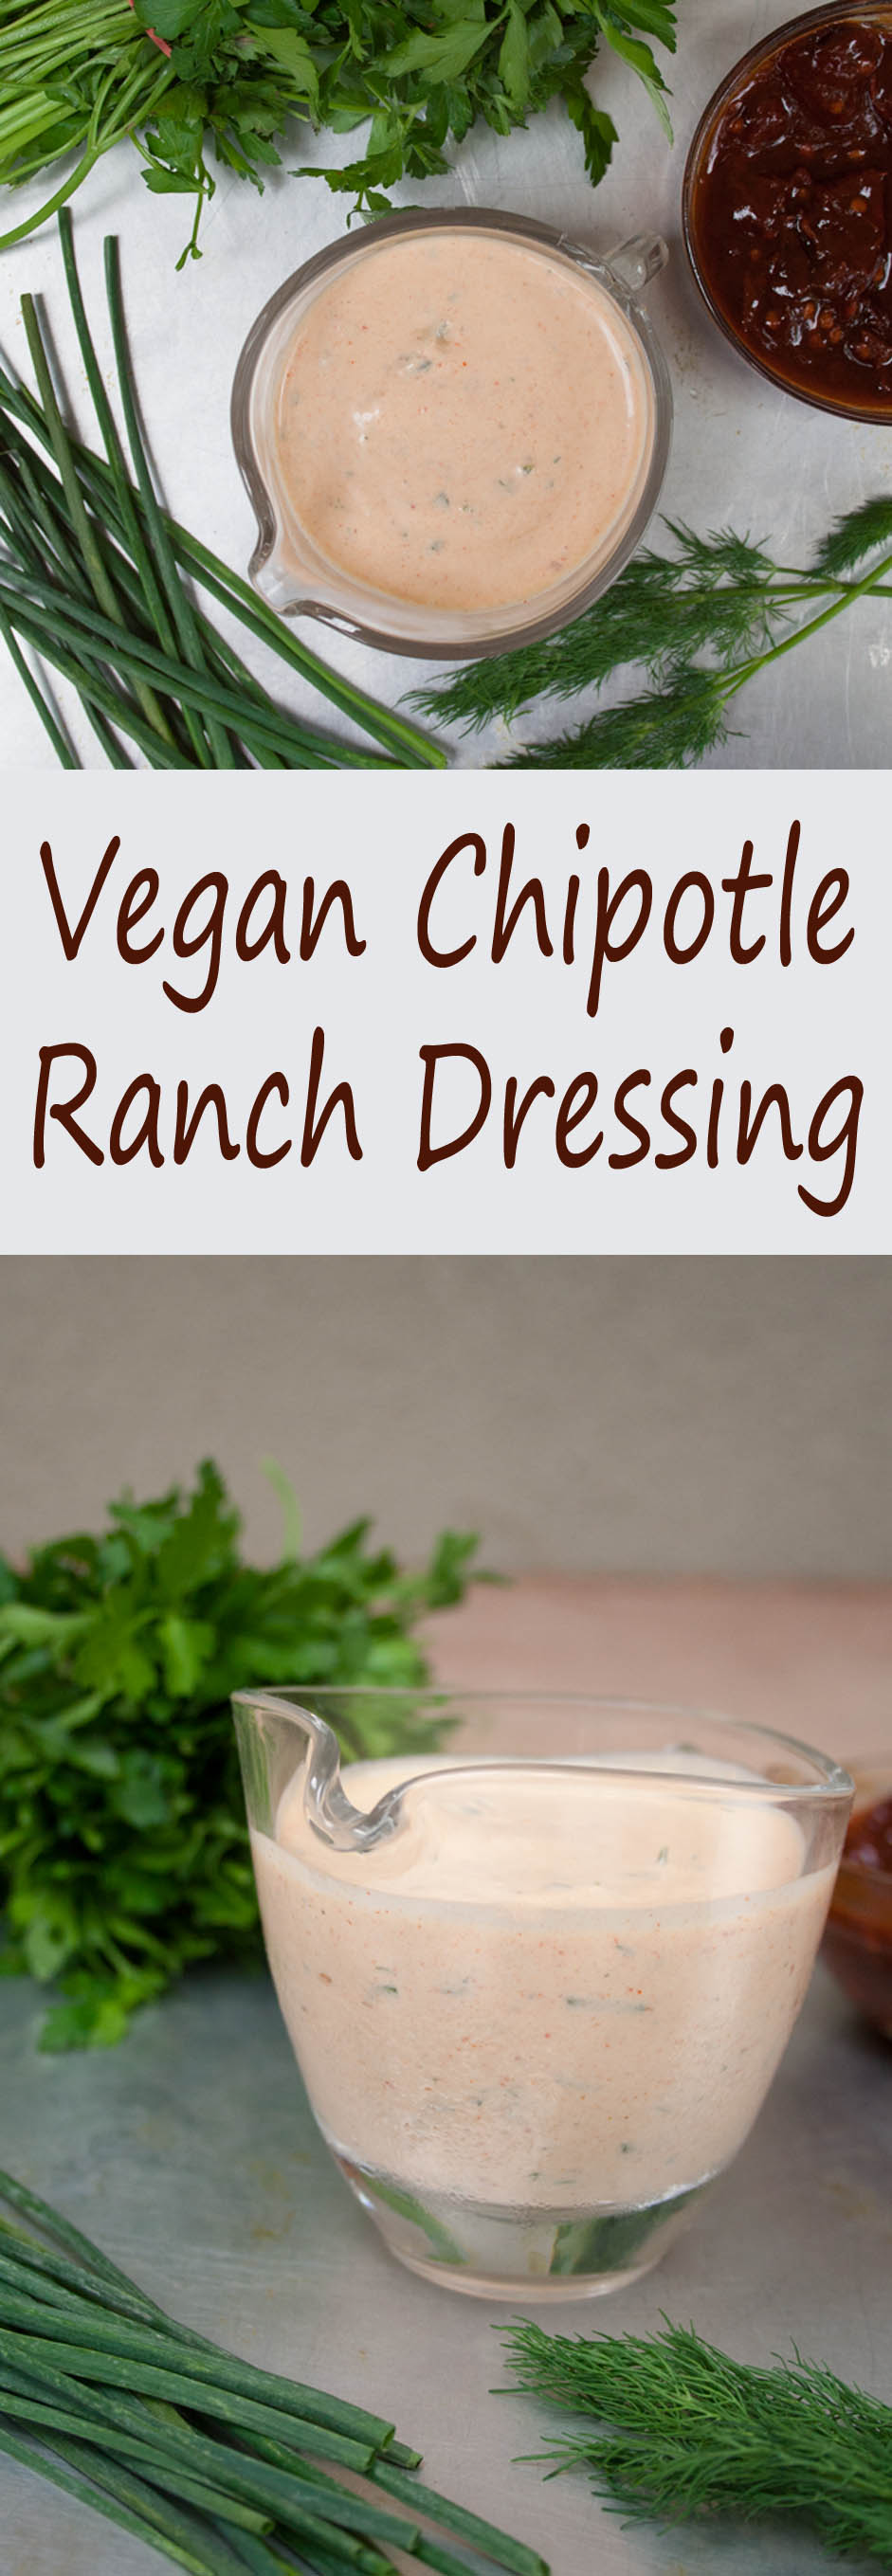 Vegan Chipotle Ranch Dressing collage photo with two photos and text in between.